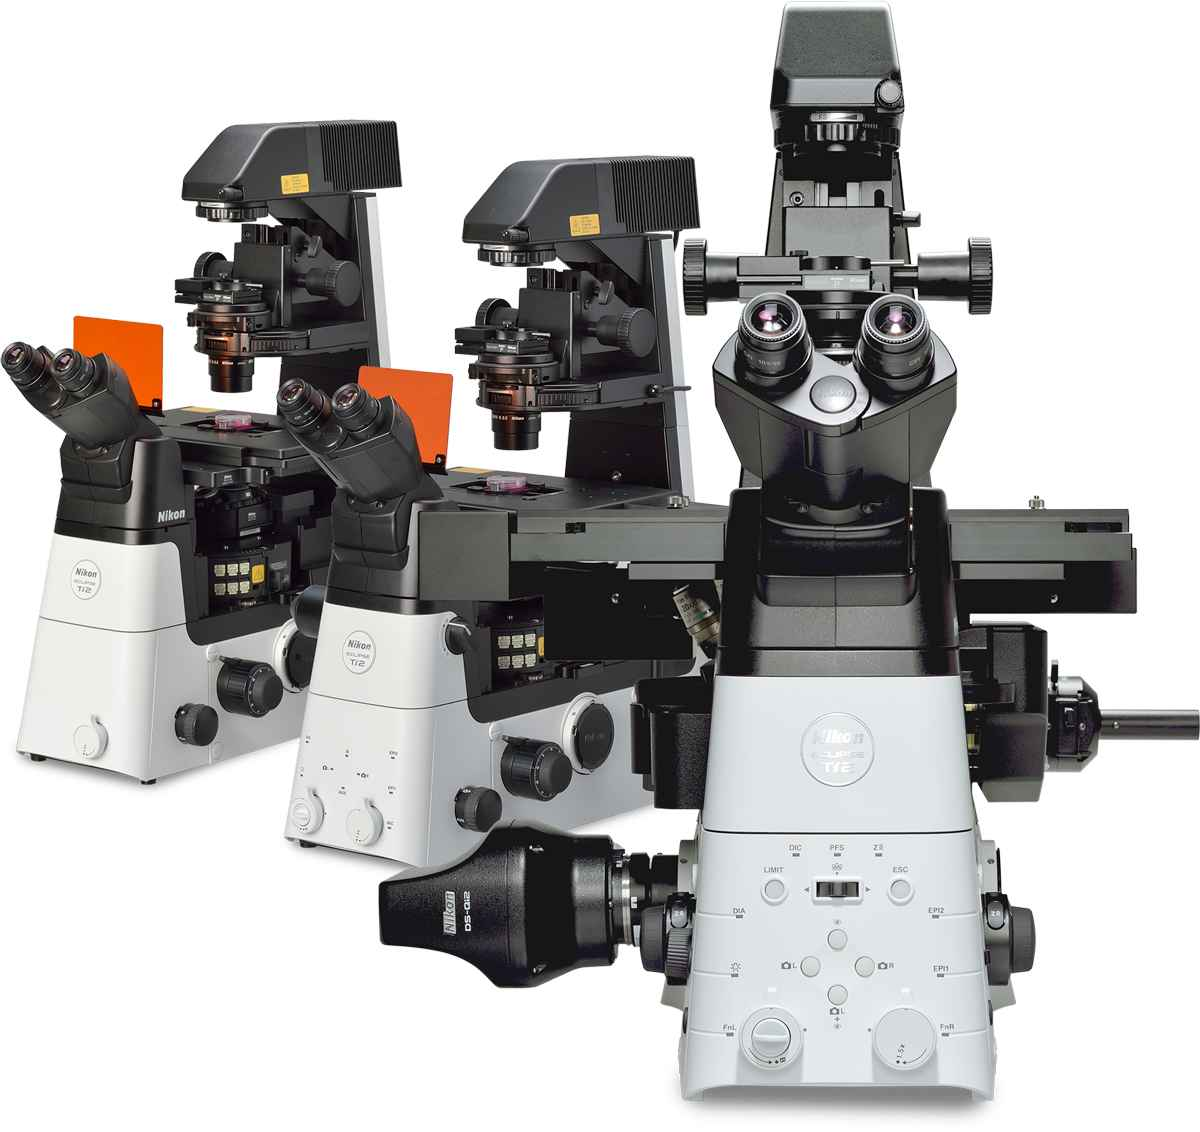 Eclipse Ti2 Series | Inverted Microscopes | Products | Nikon